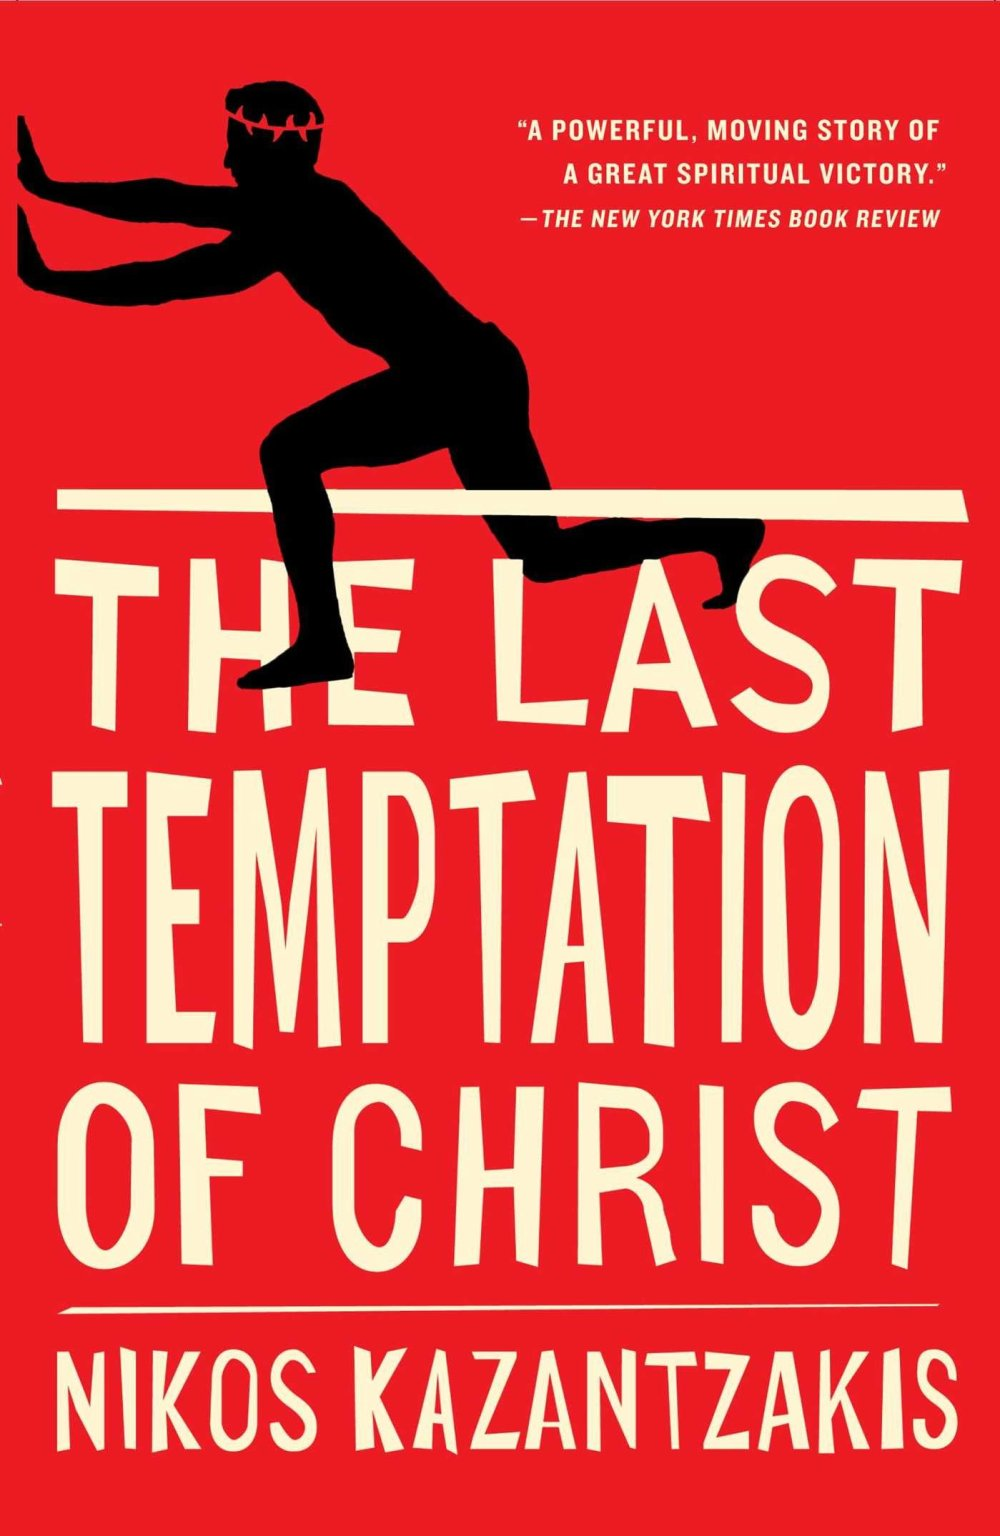 the last temptation of christ book cover